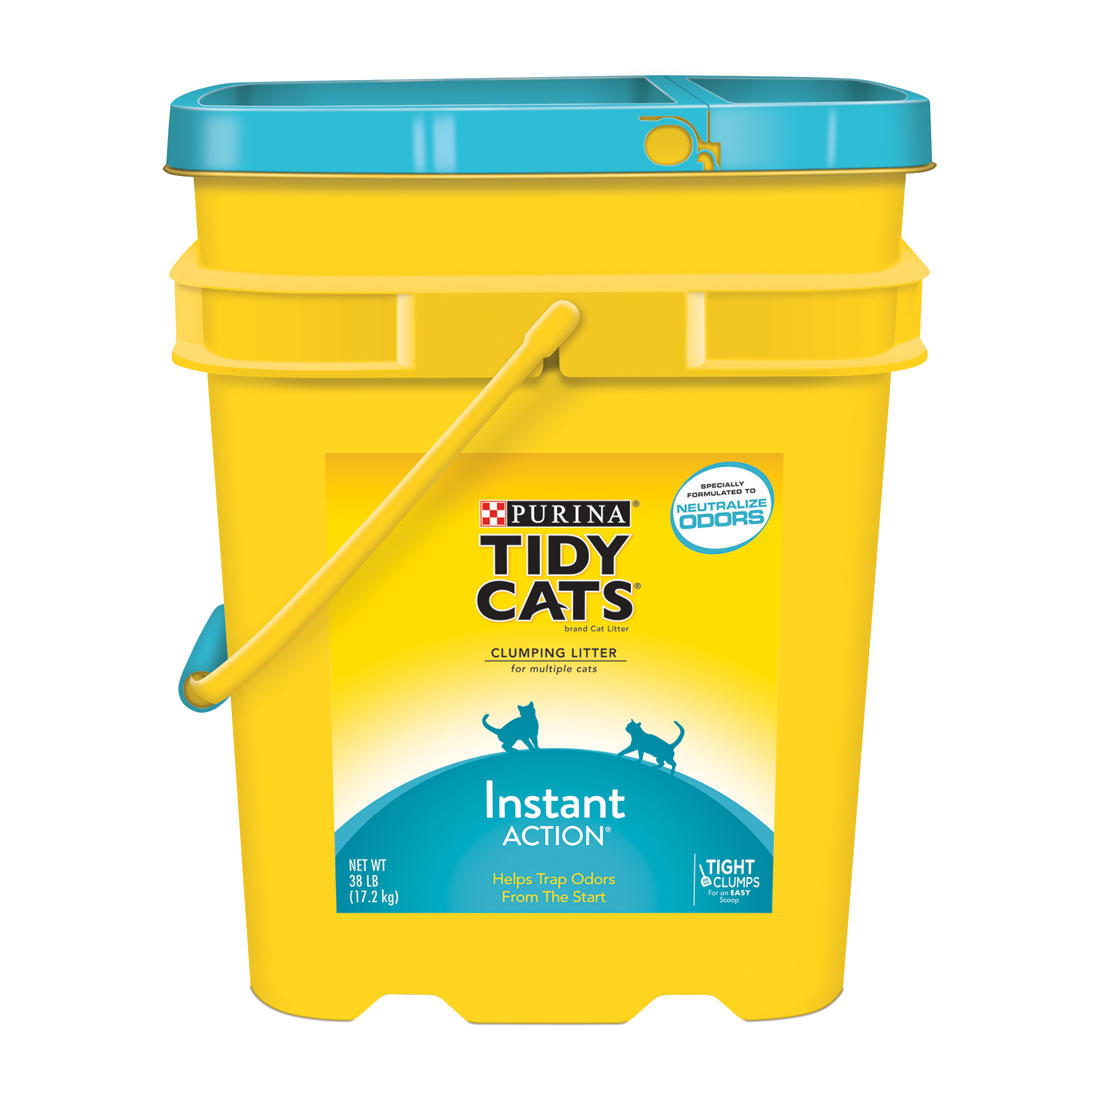 image regarding Tidy Cat Litter Coupons Printable named Purina Tidy Cats Clumping Immediate-Stage Cat Clutter, 38 kilos.